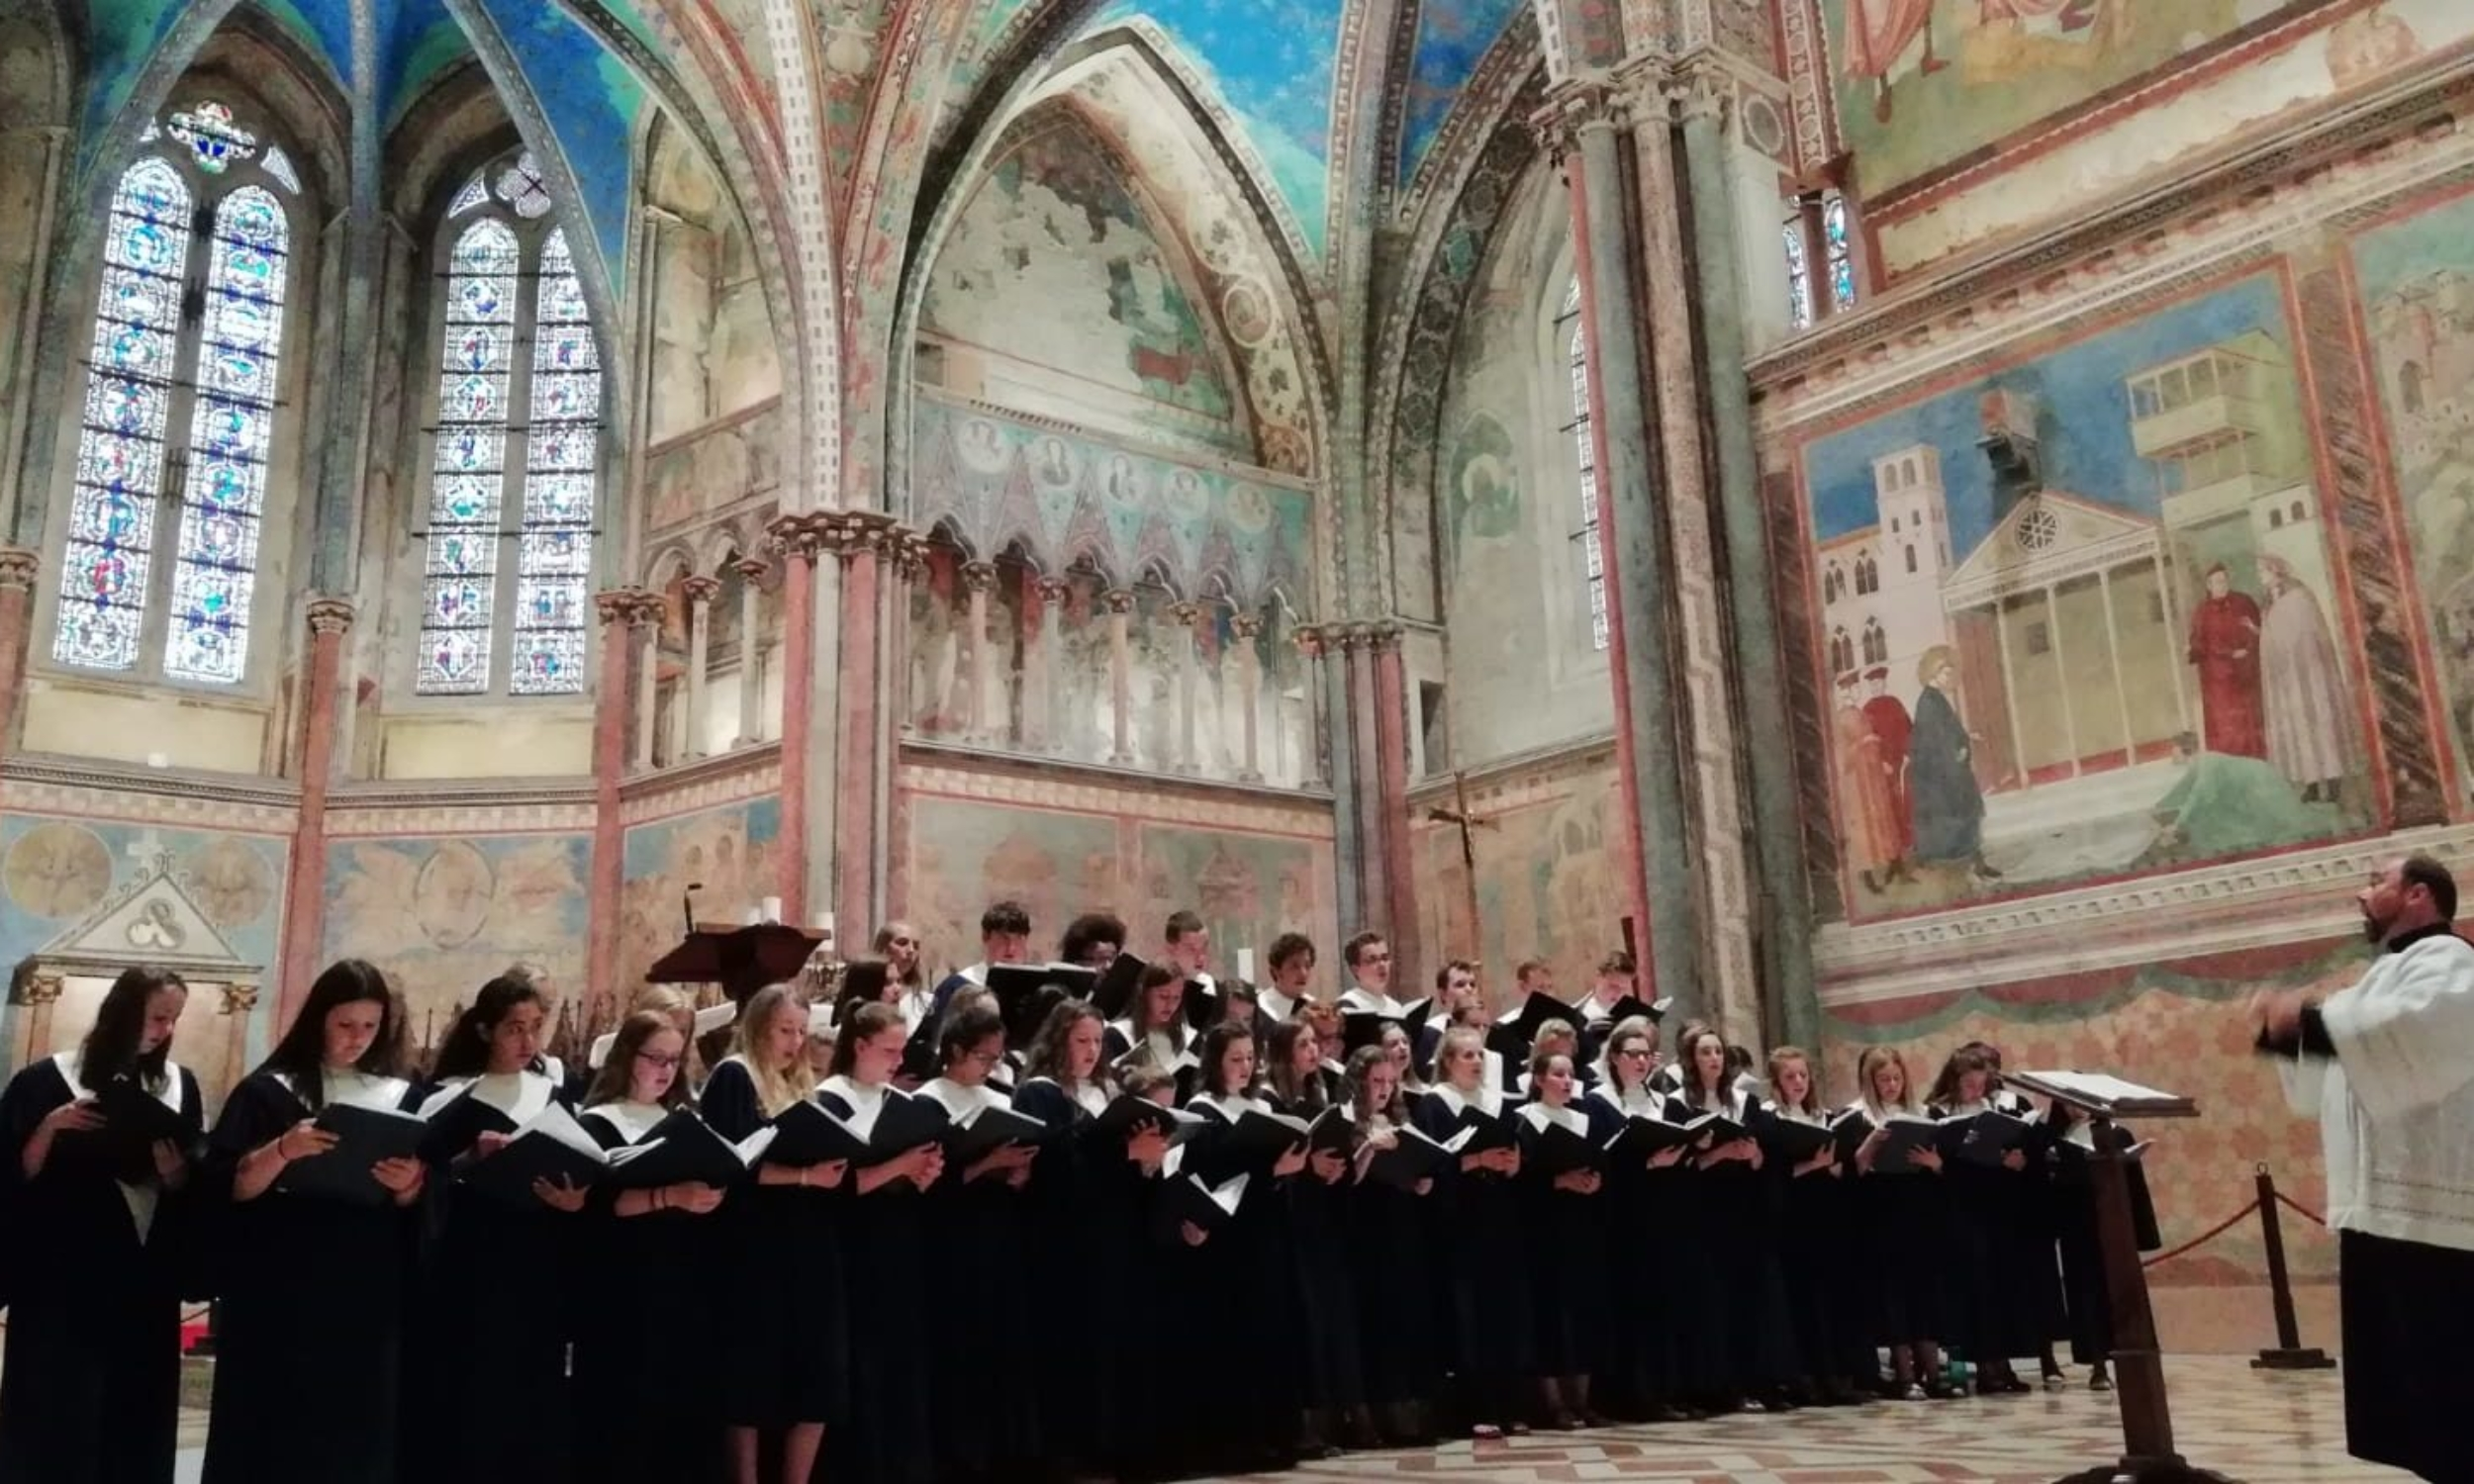 Concert in Assisi